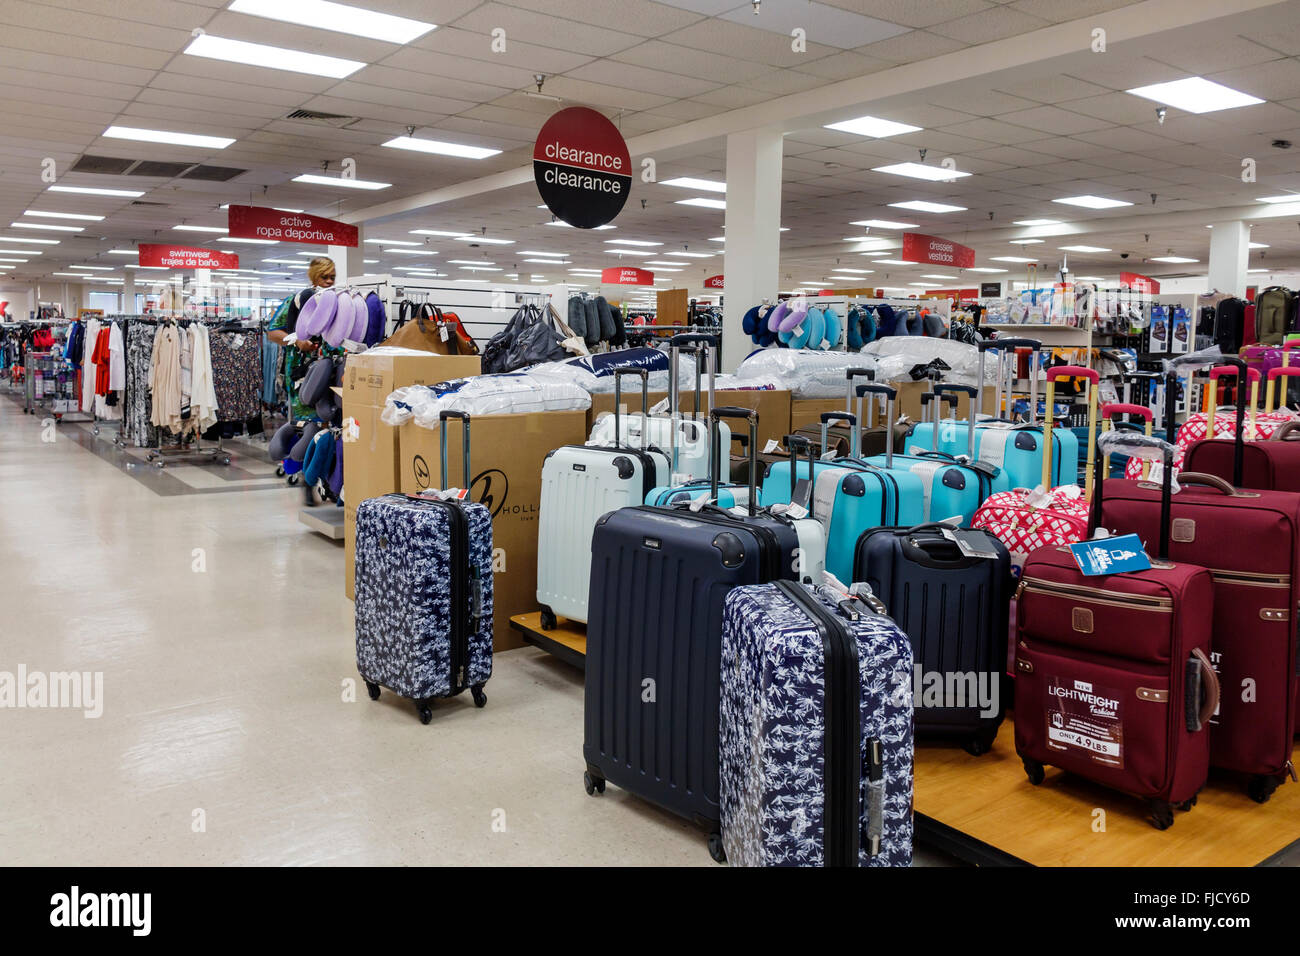 North Miami Beach Florida TJMaxx T.J.Maxx discount department ...